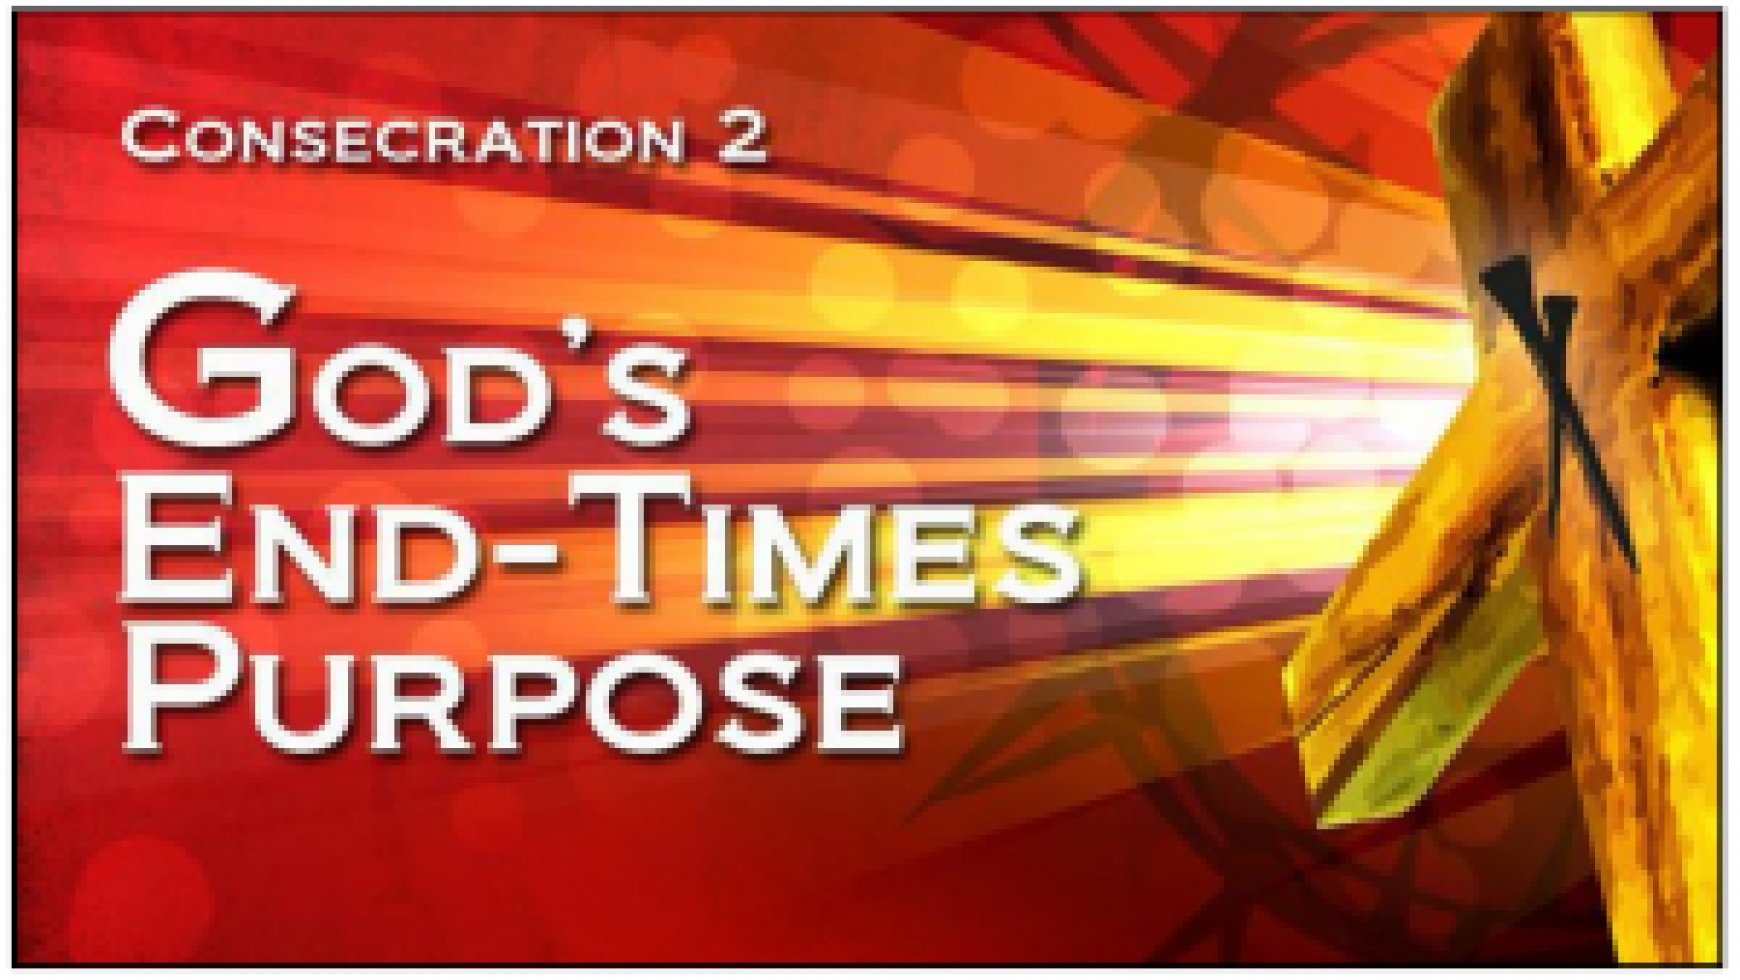 God's End-Times Purpose